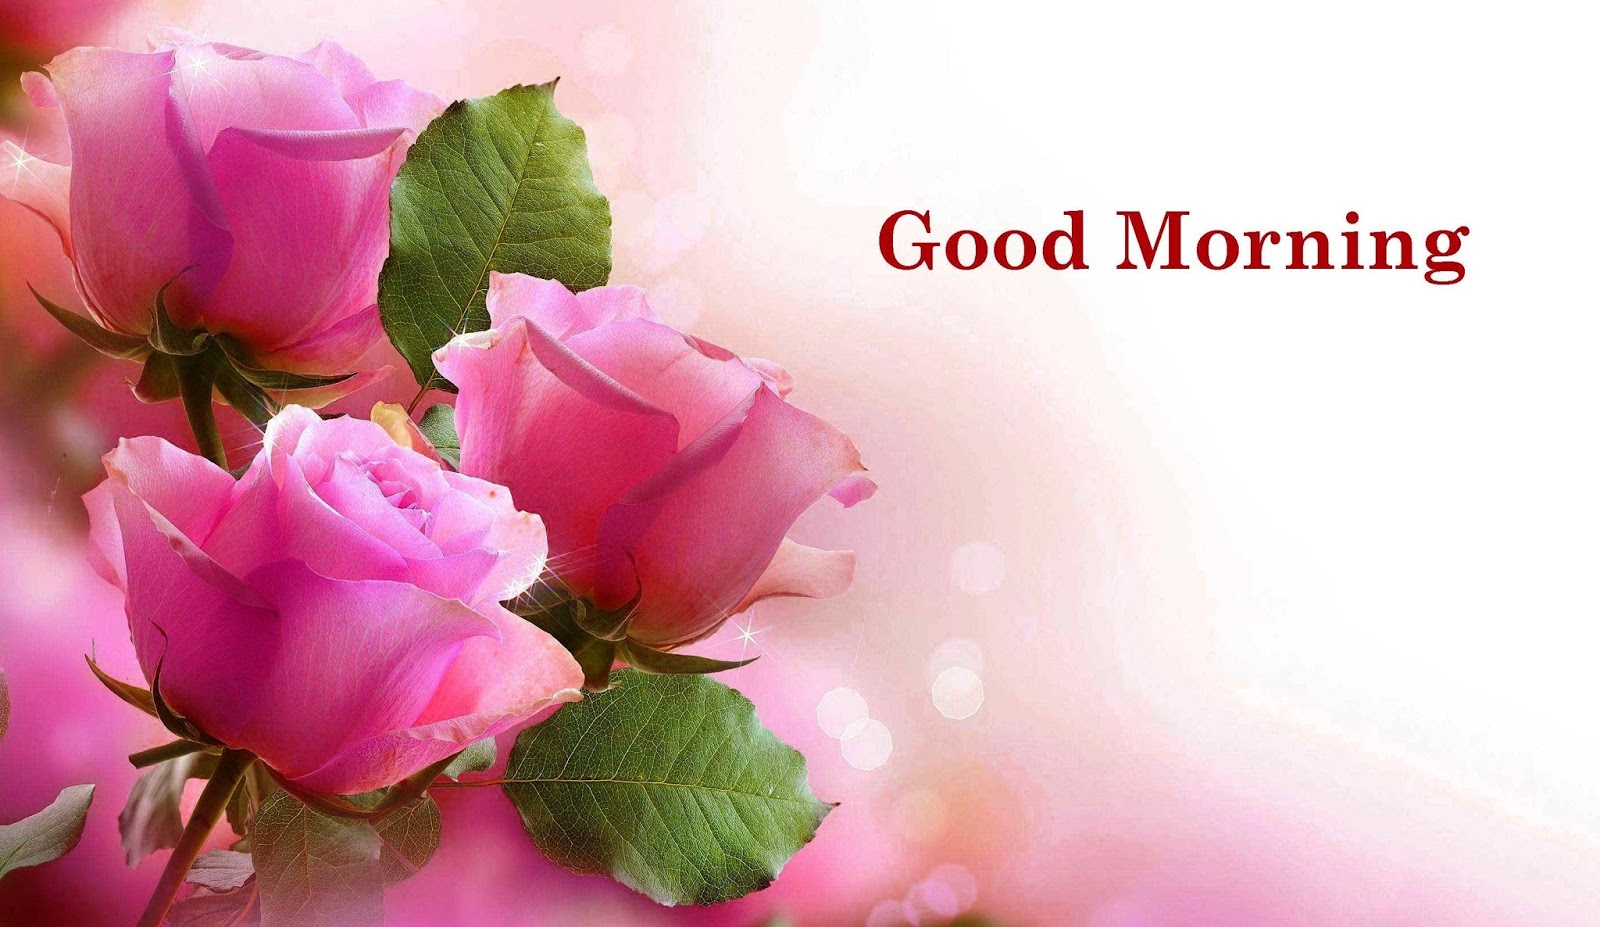 good morning hd rose flower images with messages photos pictures